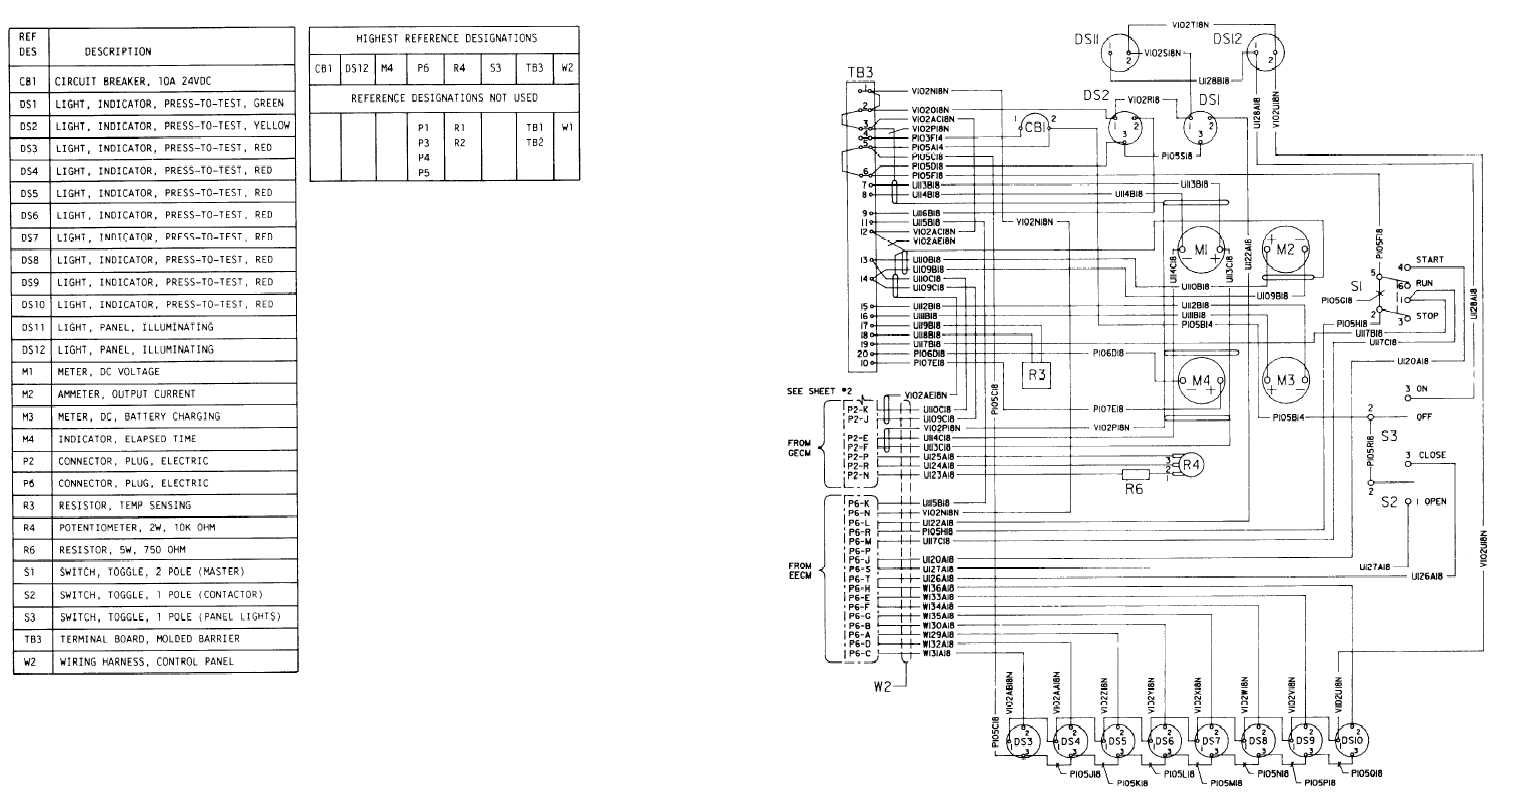 Electrical Panel Board Wiring Diagram Martinloper Me